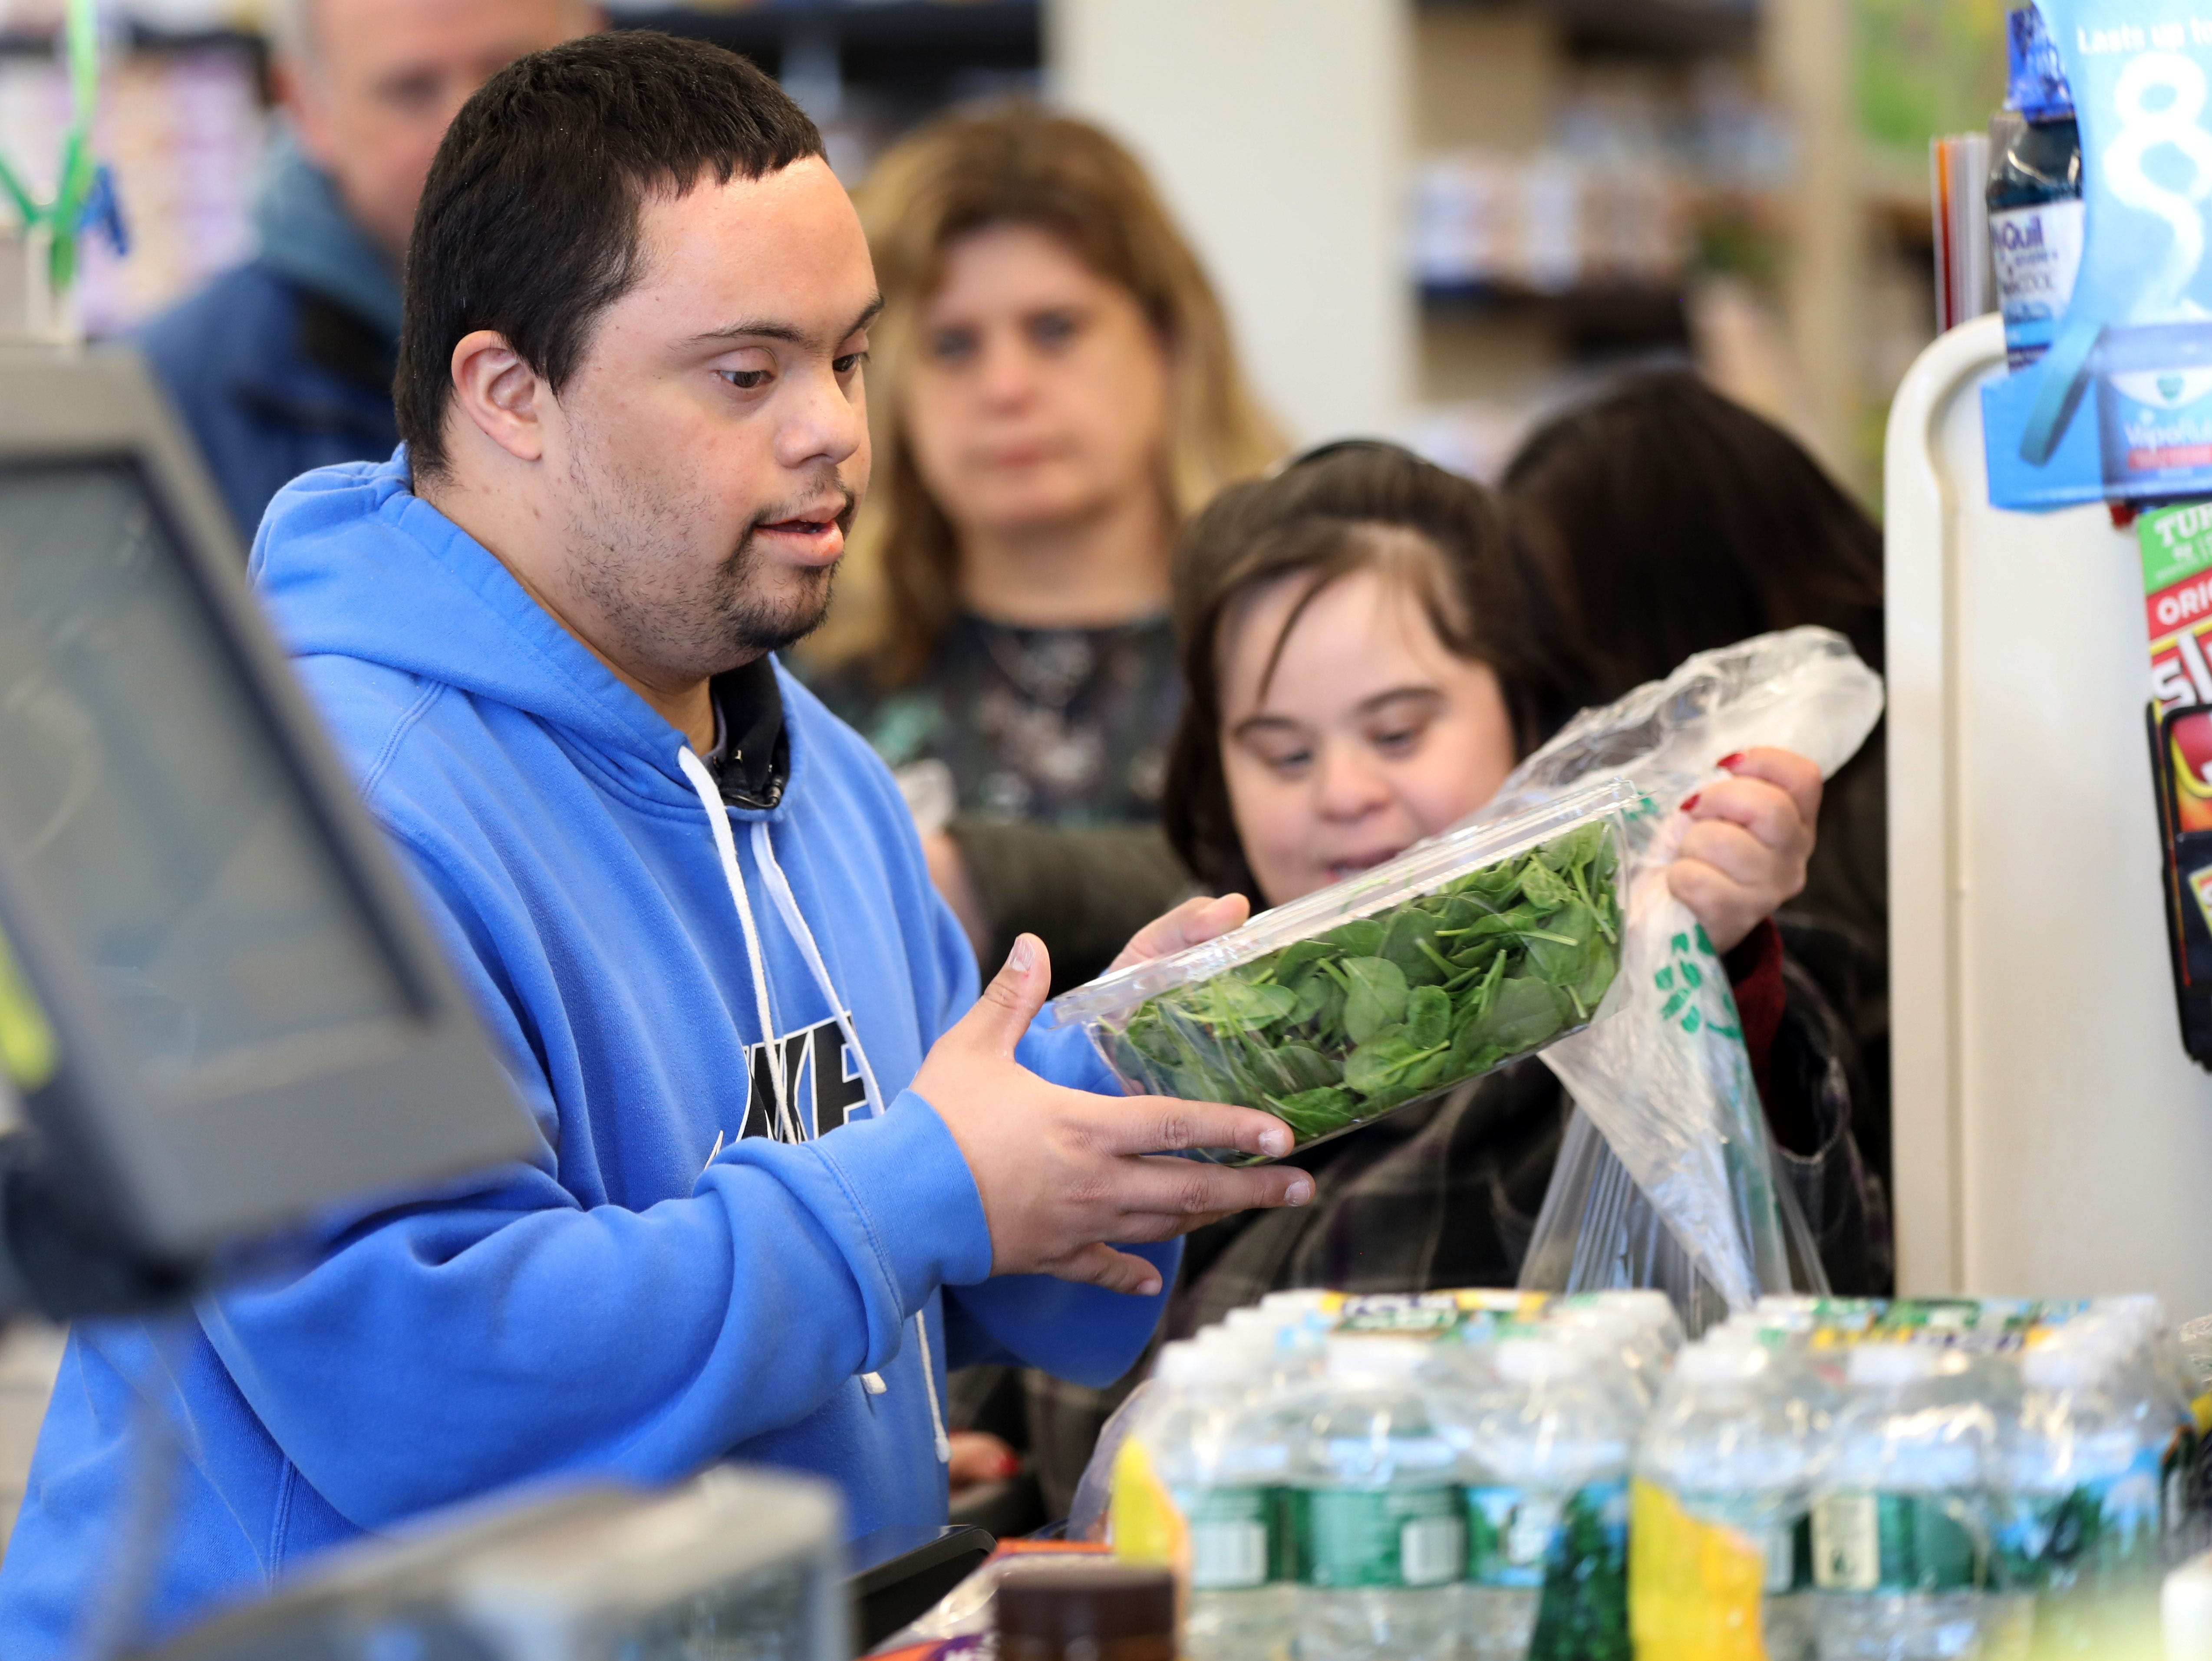 Anthony Mundy, 29 takes the groceries out of the shopping cart after shopping for lunch with members of his day program at Jawonio at ShopRite in Airmont March 12, 2019.